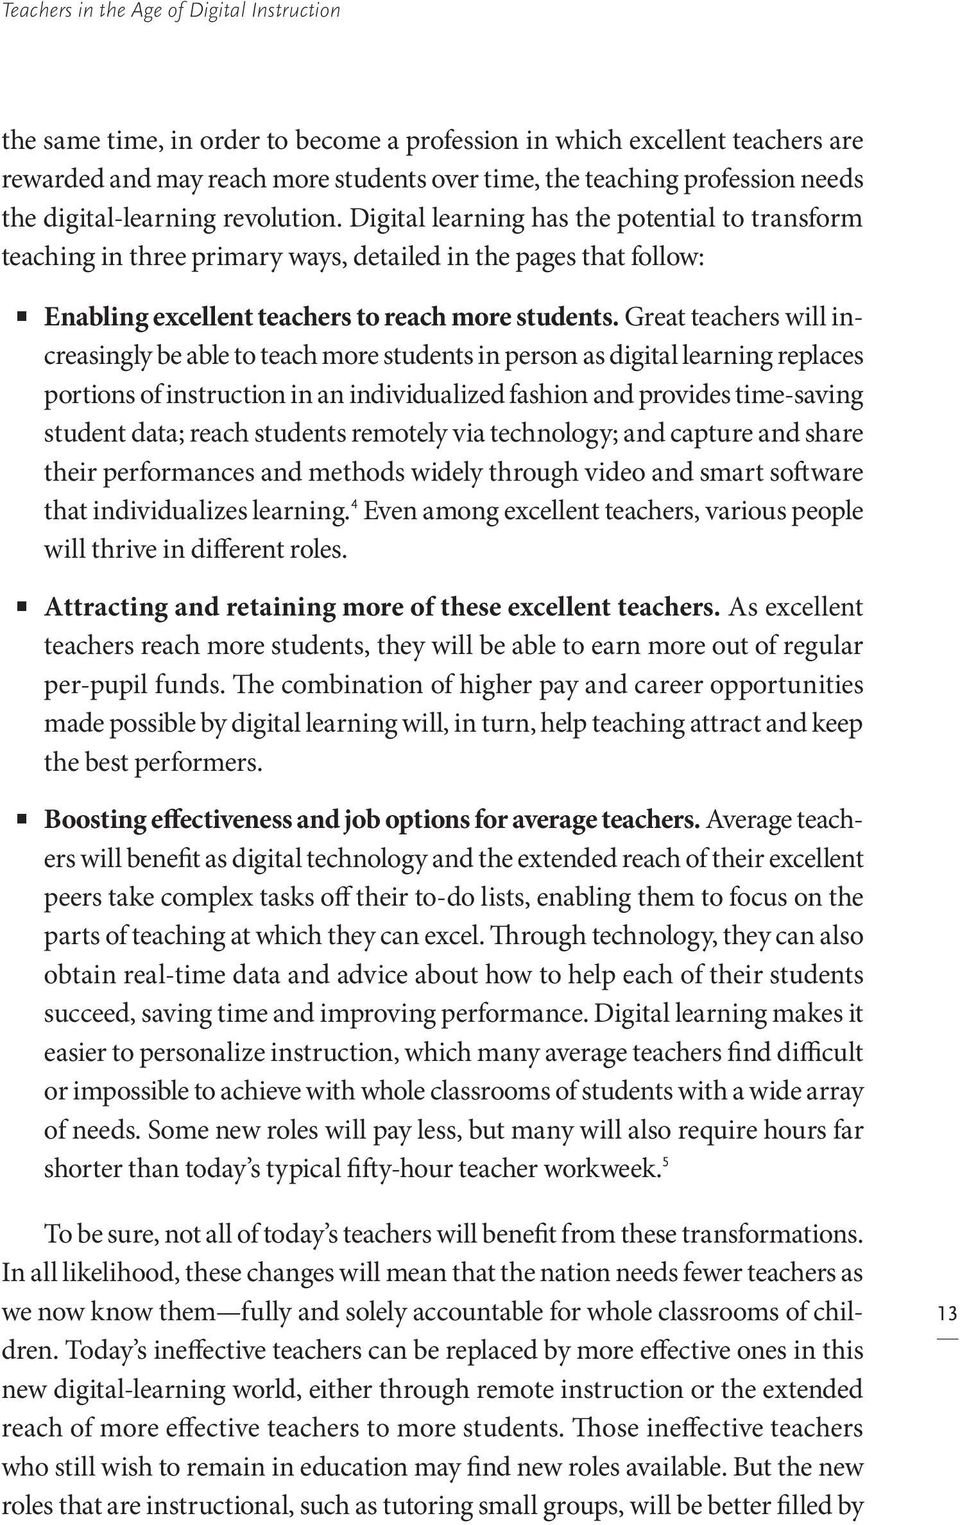 Great teachers will increasingly be able to teach more students in person as digital learning replaces portions of instruction in an individualized fashion and provides time-saving student data;